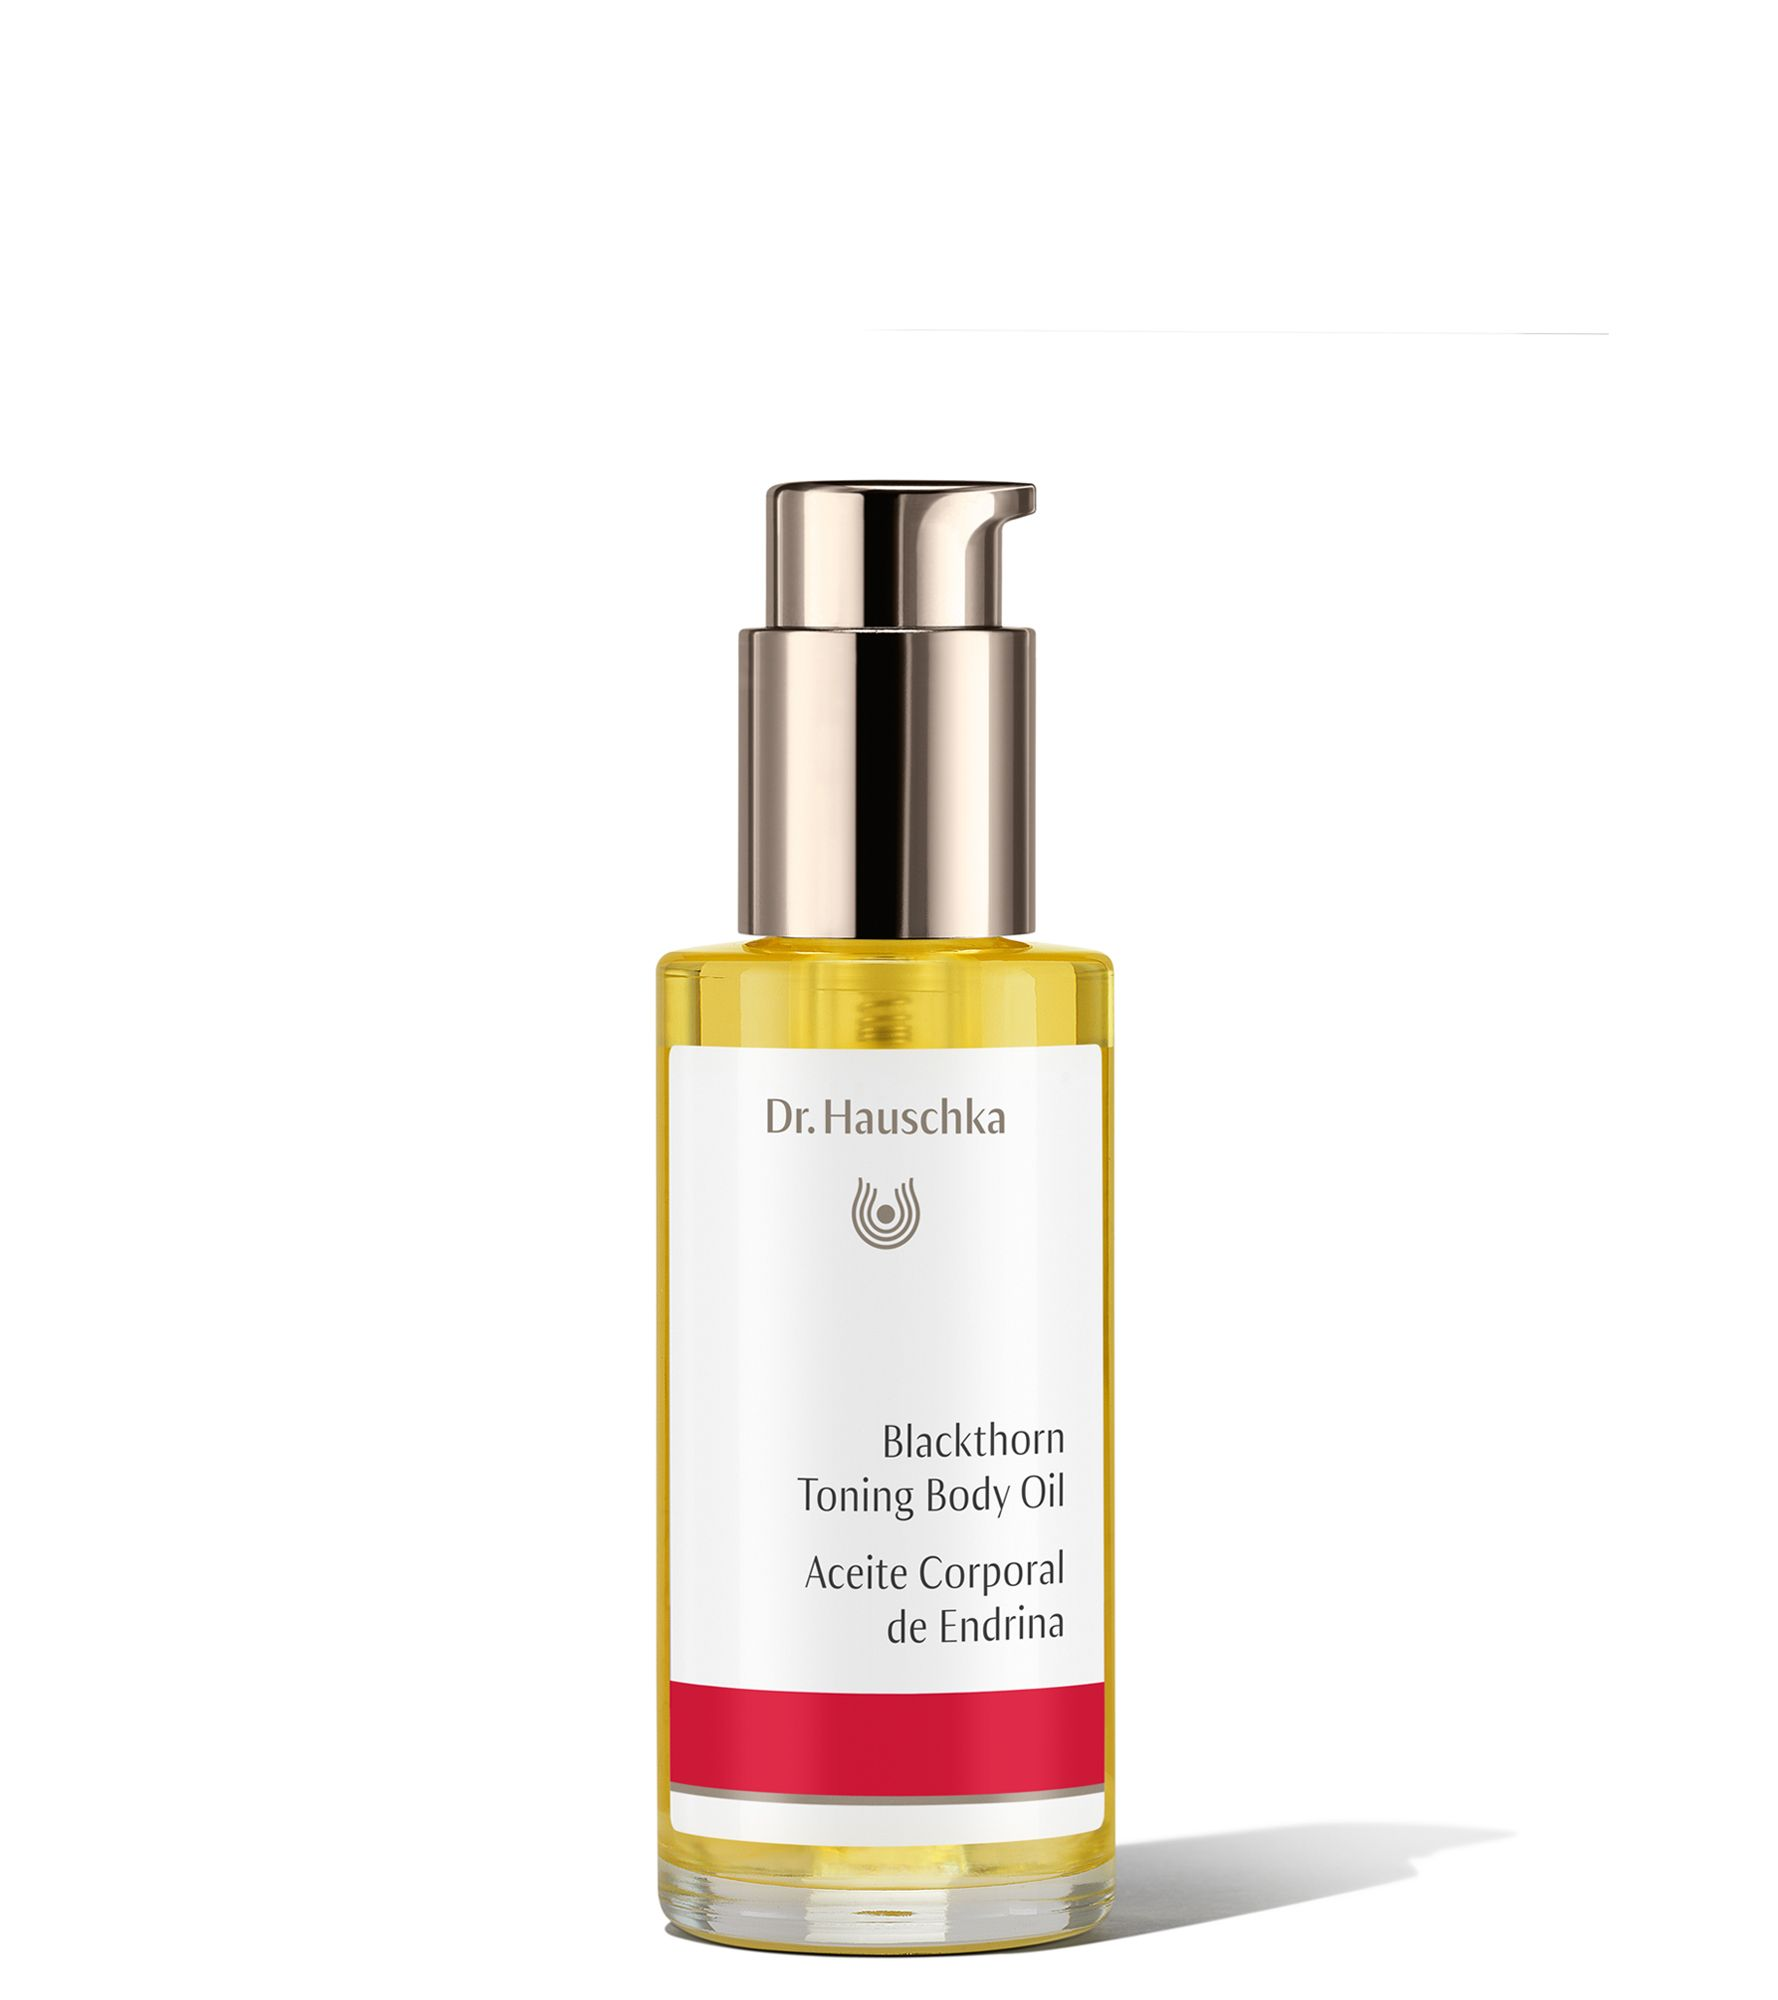 """Dr. Hauschka Blackthorn Toning Body Oil:  """"An elixir of blackthorn and birch leaf extract provides strength and protection to skin while helping to minimize the appearance of stretch marks. Even better? This oil works to firm and tone skin over time with continued use."""""""